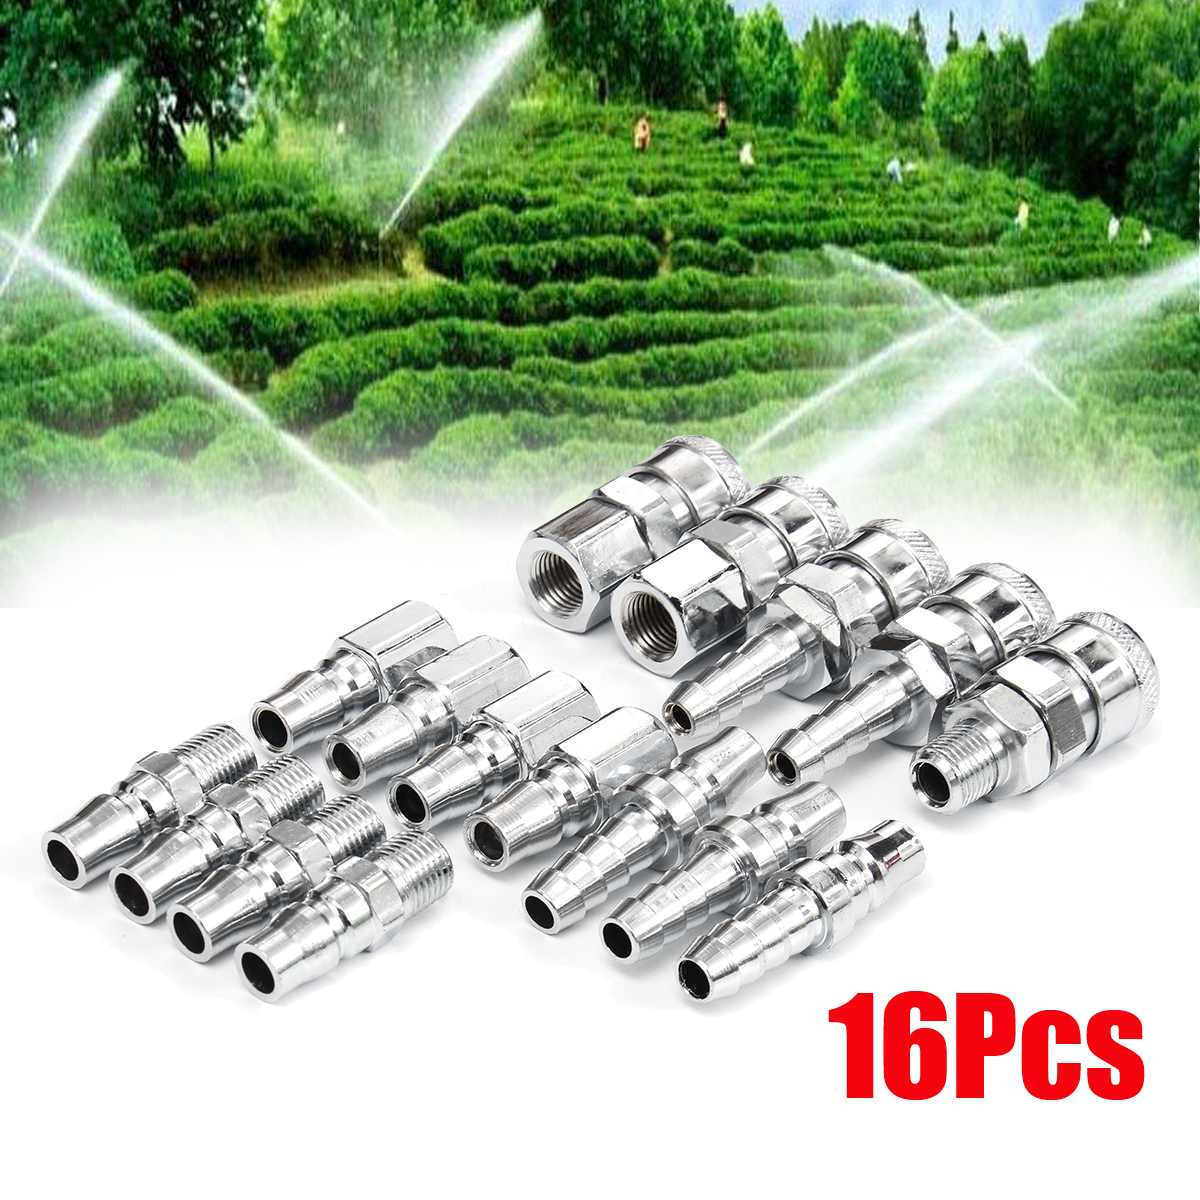 New 16pcs Quick Connector BSP Air Line Hose Fittings Compressor Connector Quick Release Coupler Set